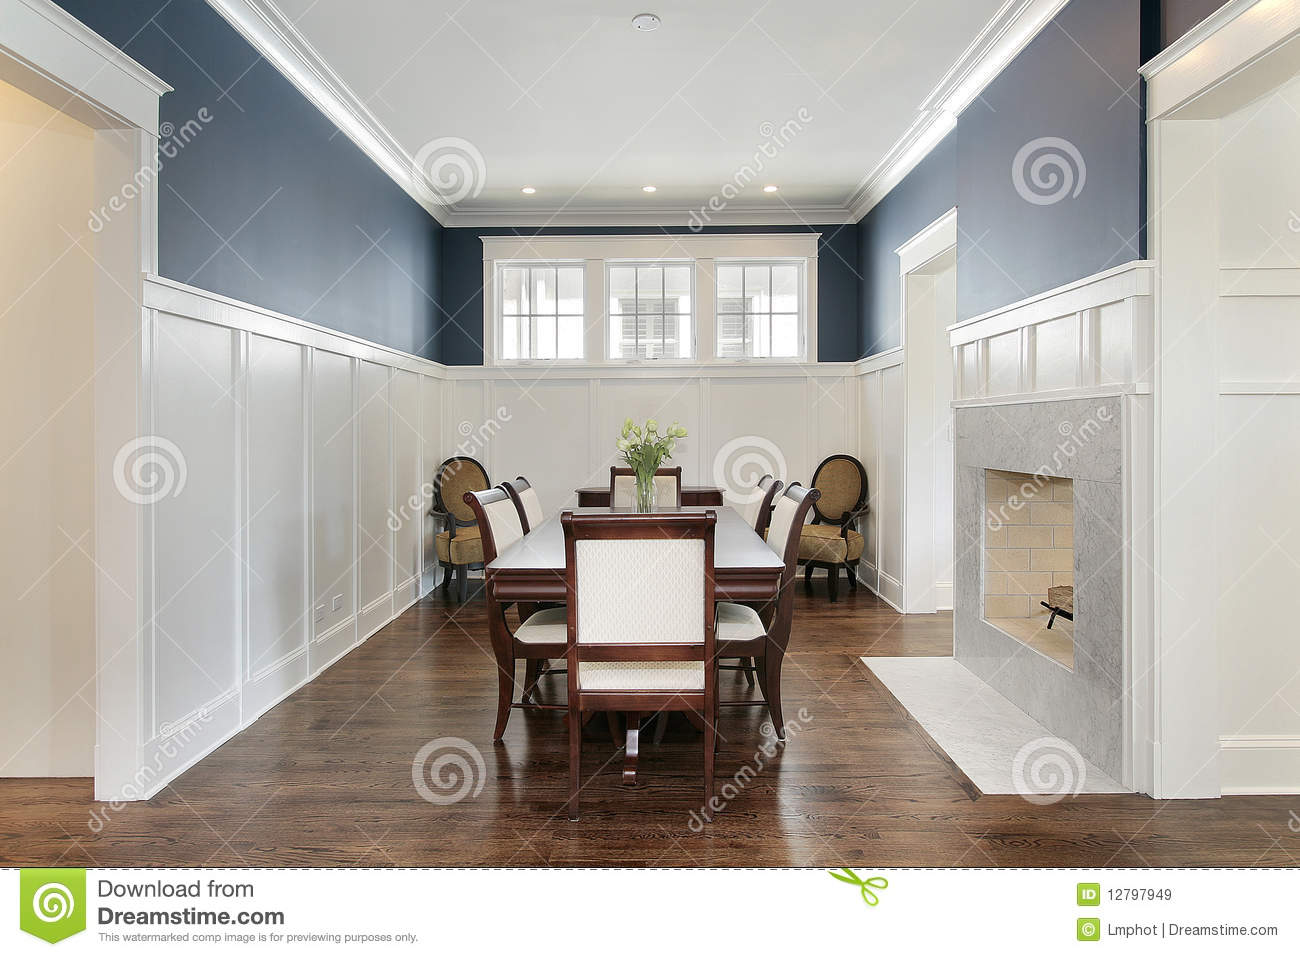 dining room with fireplace royalty free stock images - image: 12797949